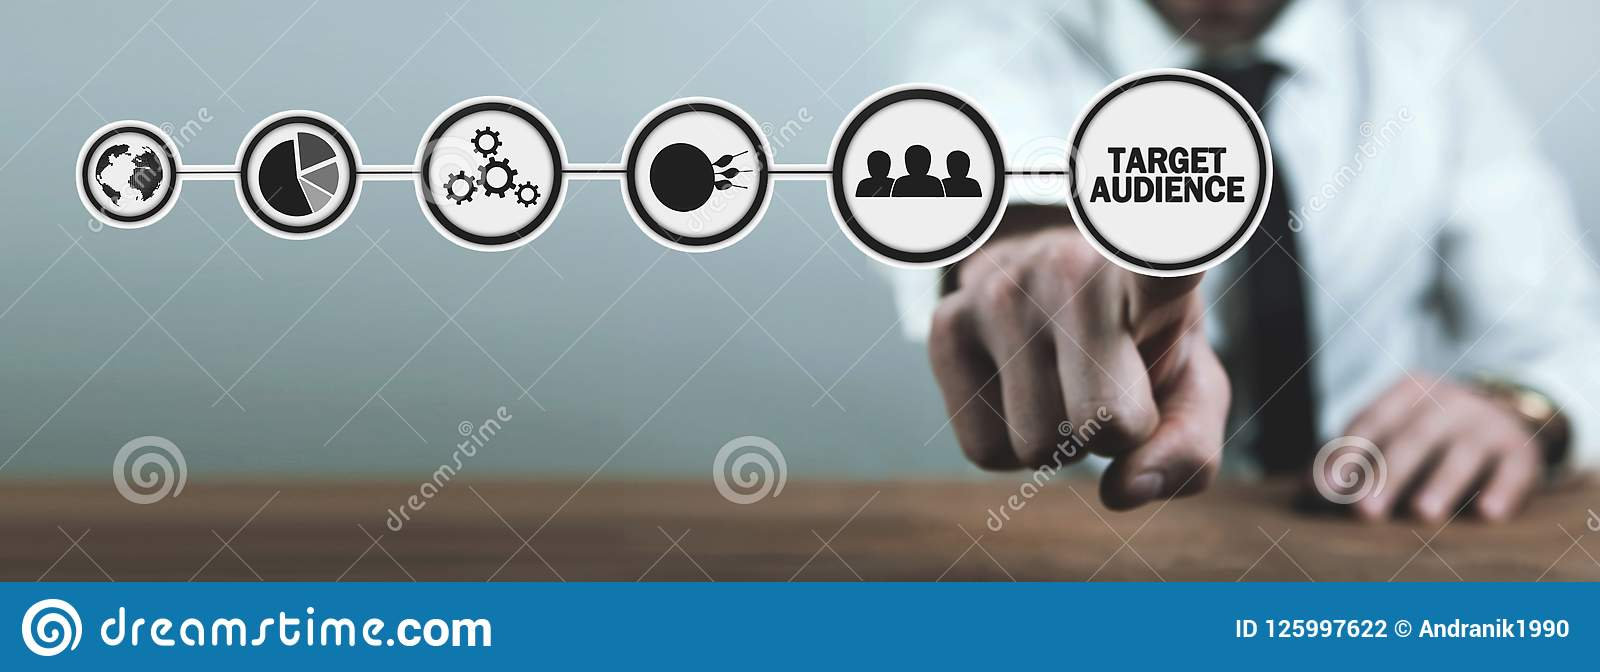 Man hand touching a Target Audience button. Business concept